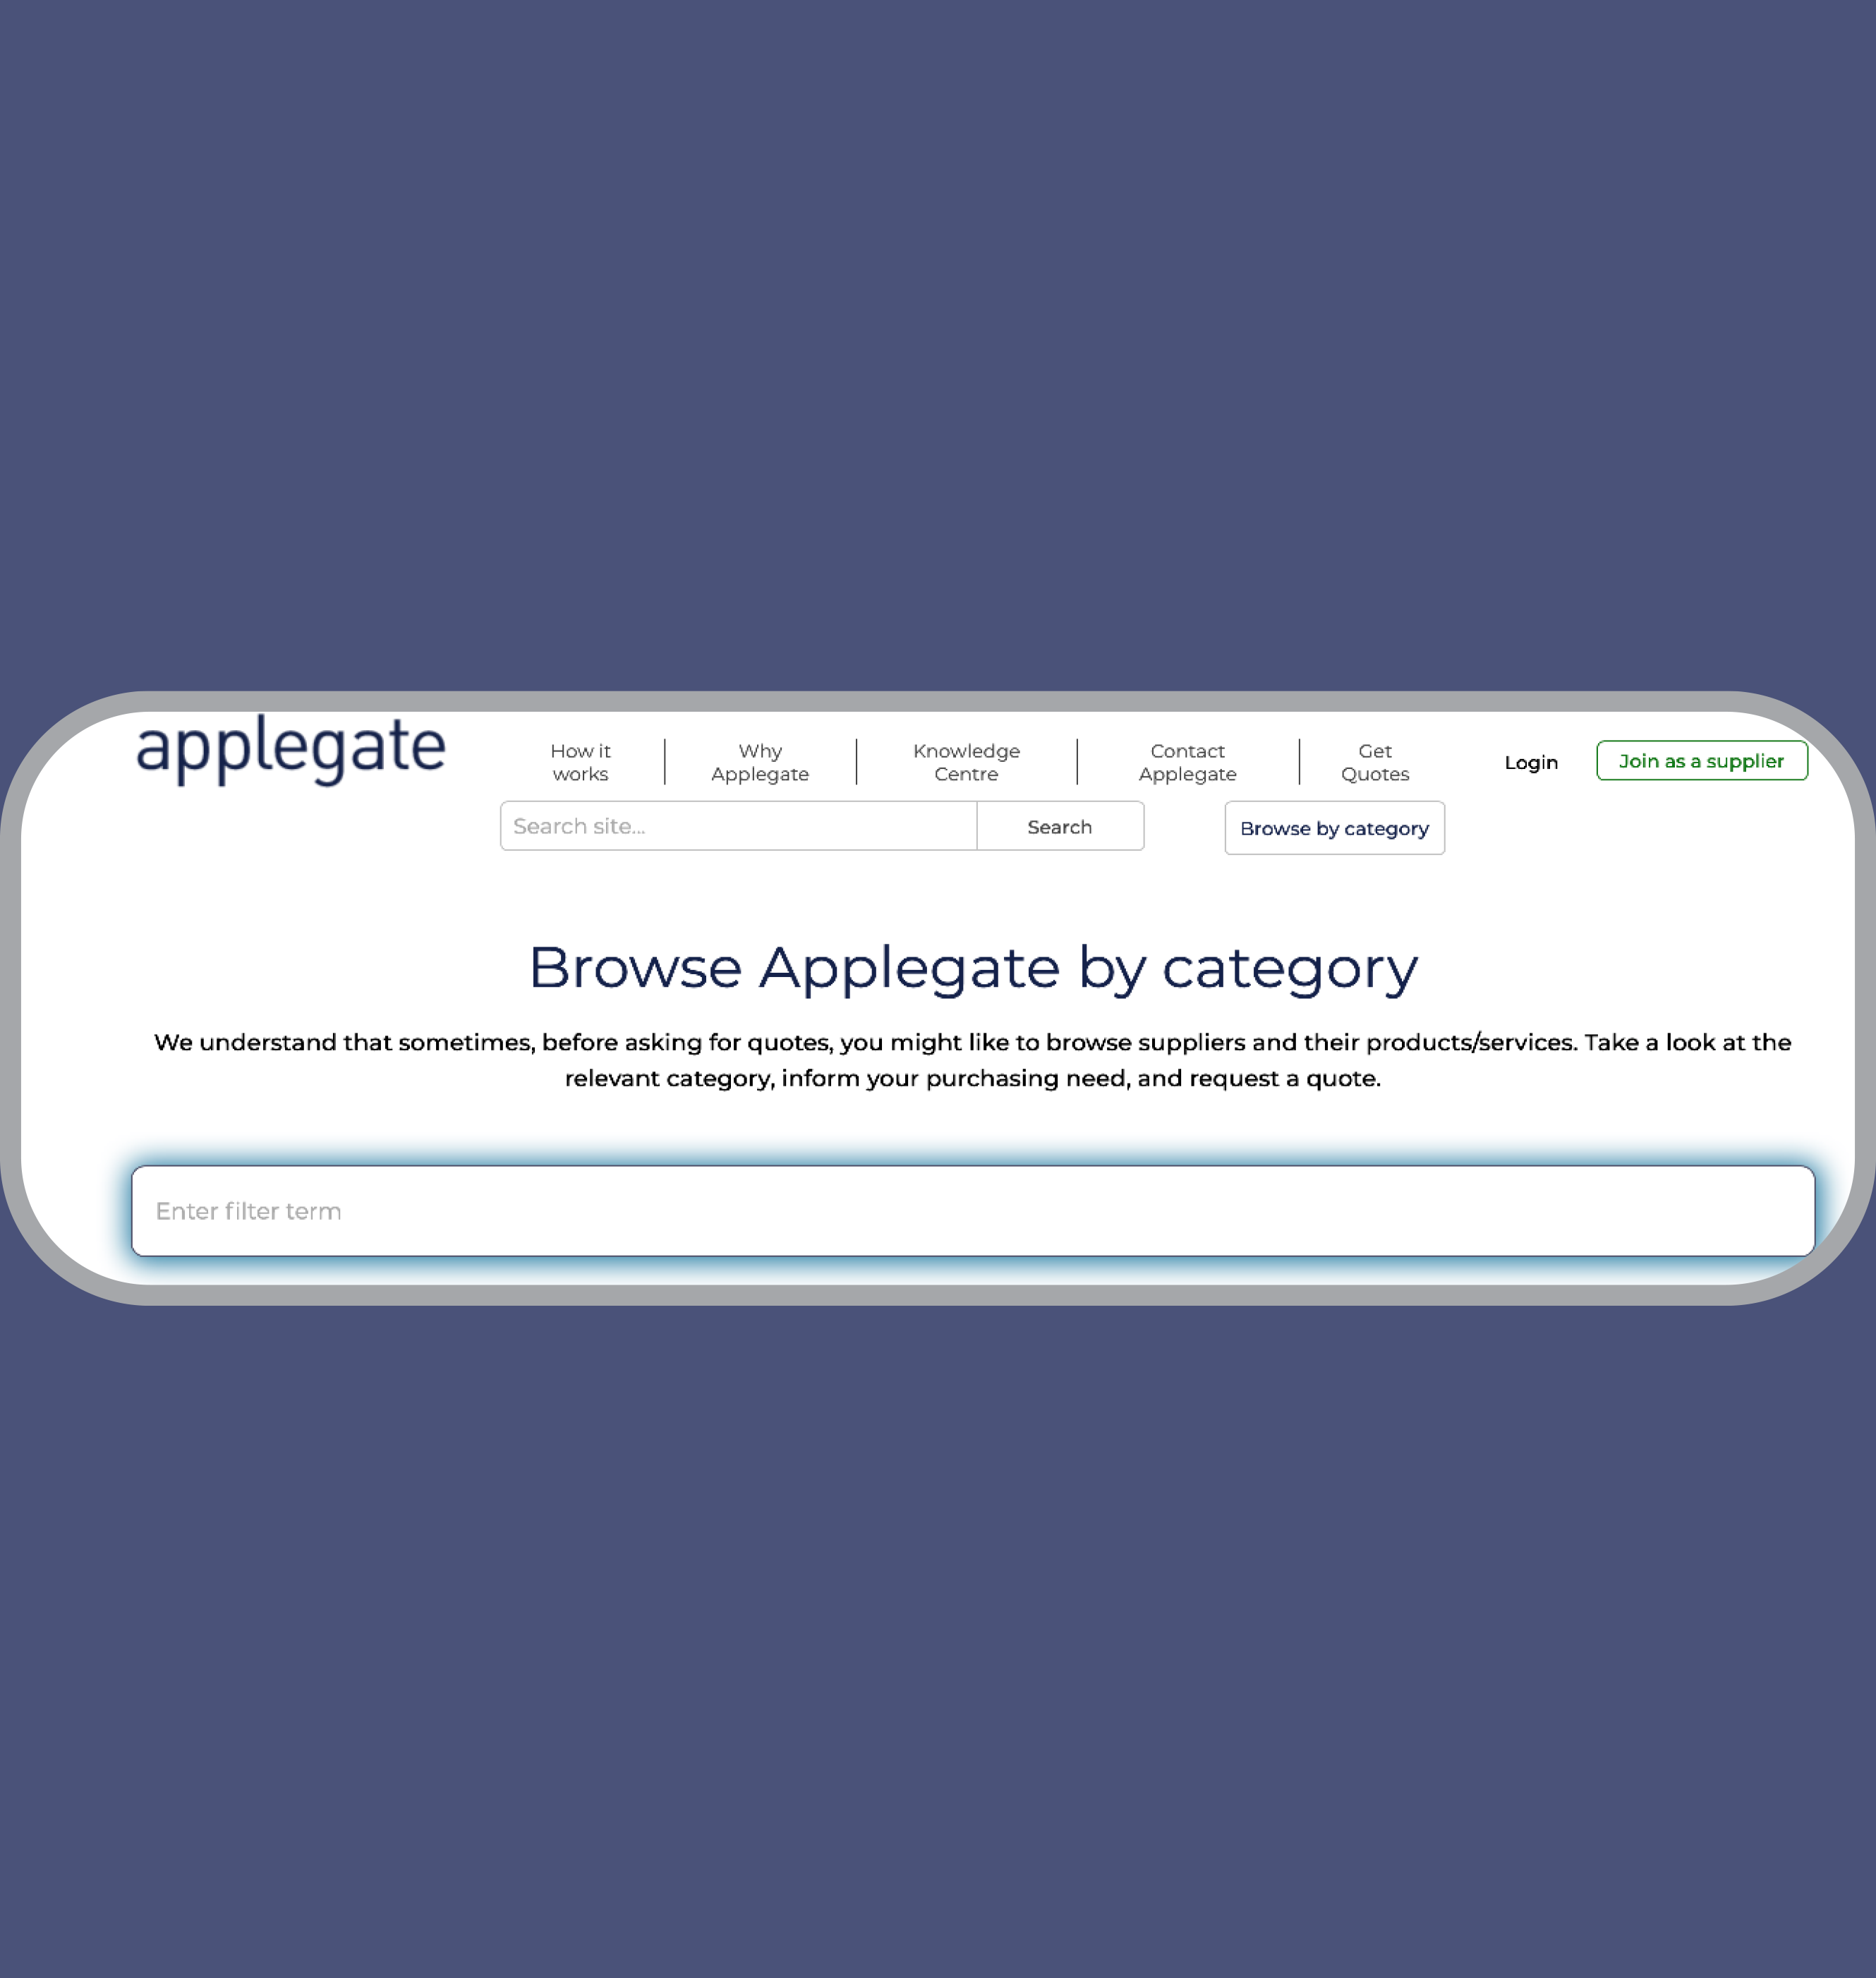 Applegate Search image 2